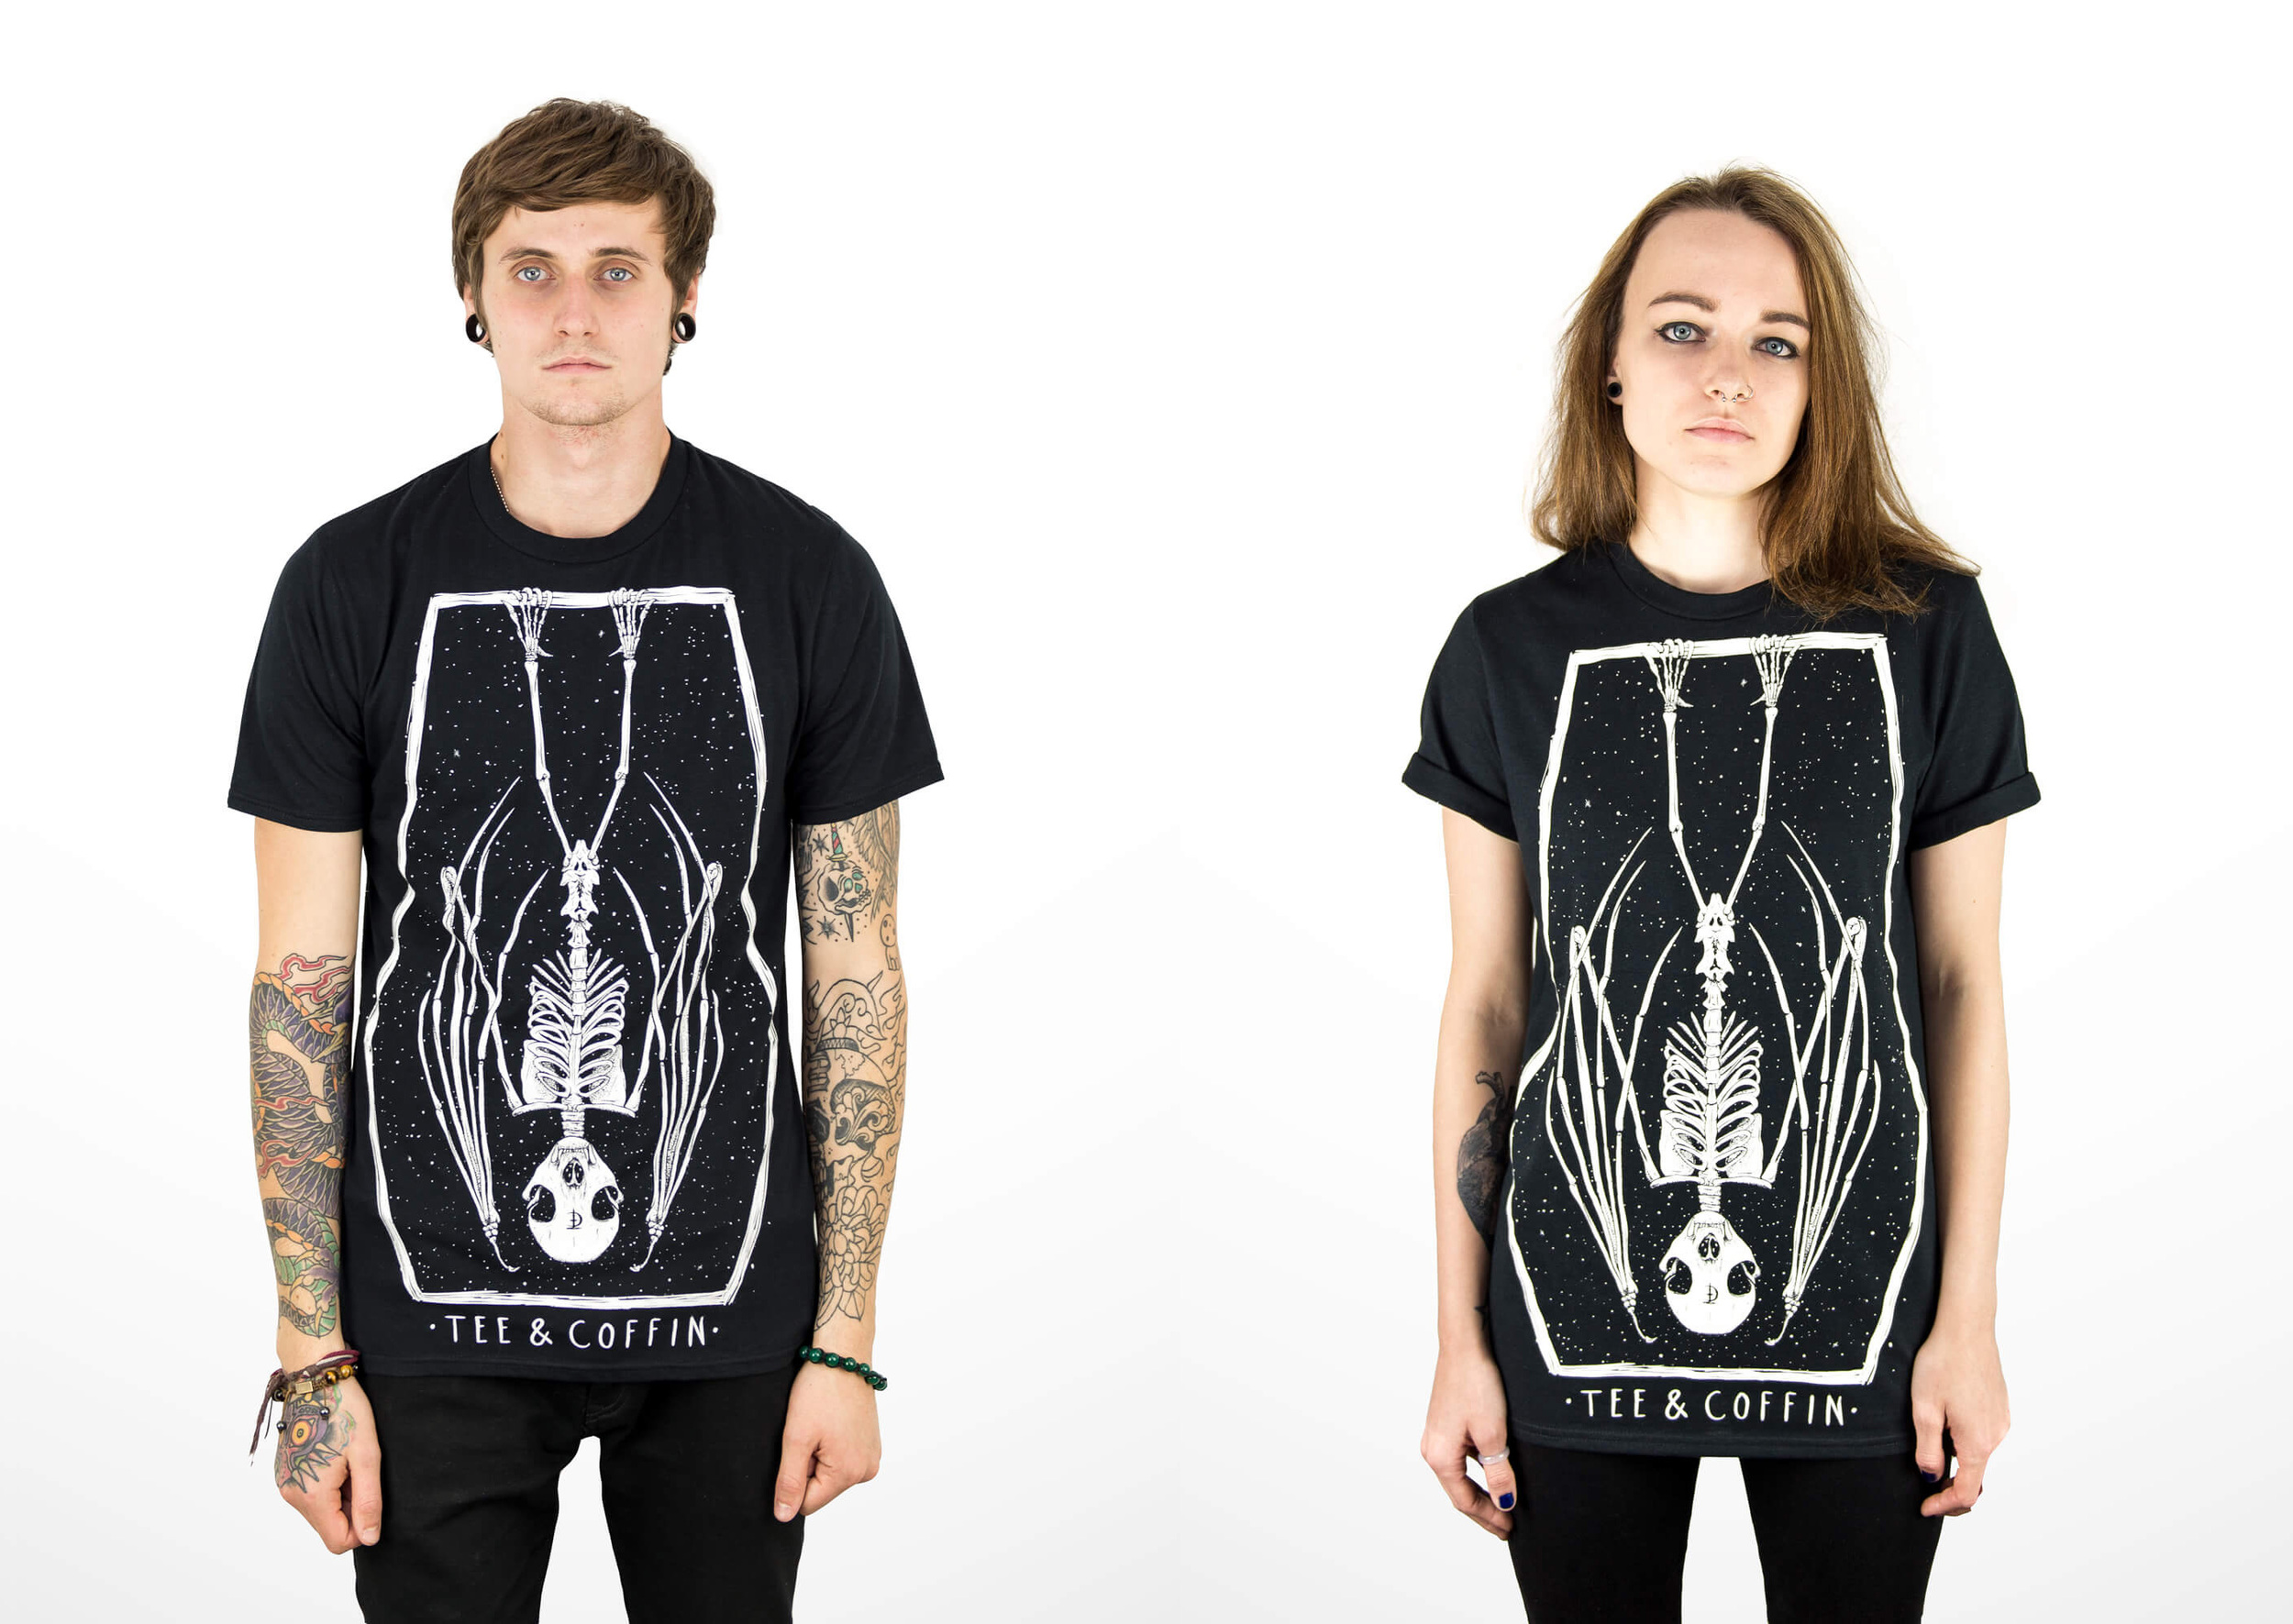 hang_in_there_tee_and_coffin_apparel.jpg